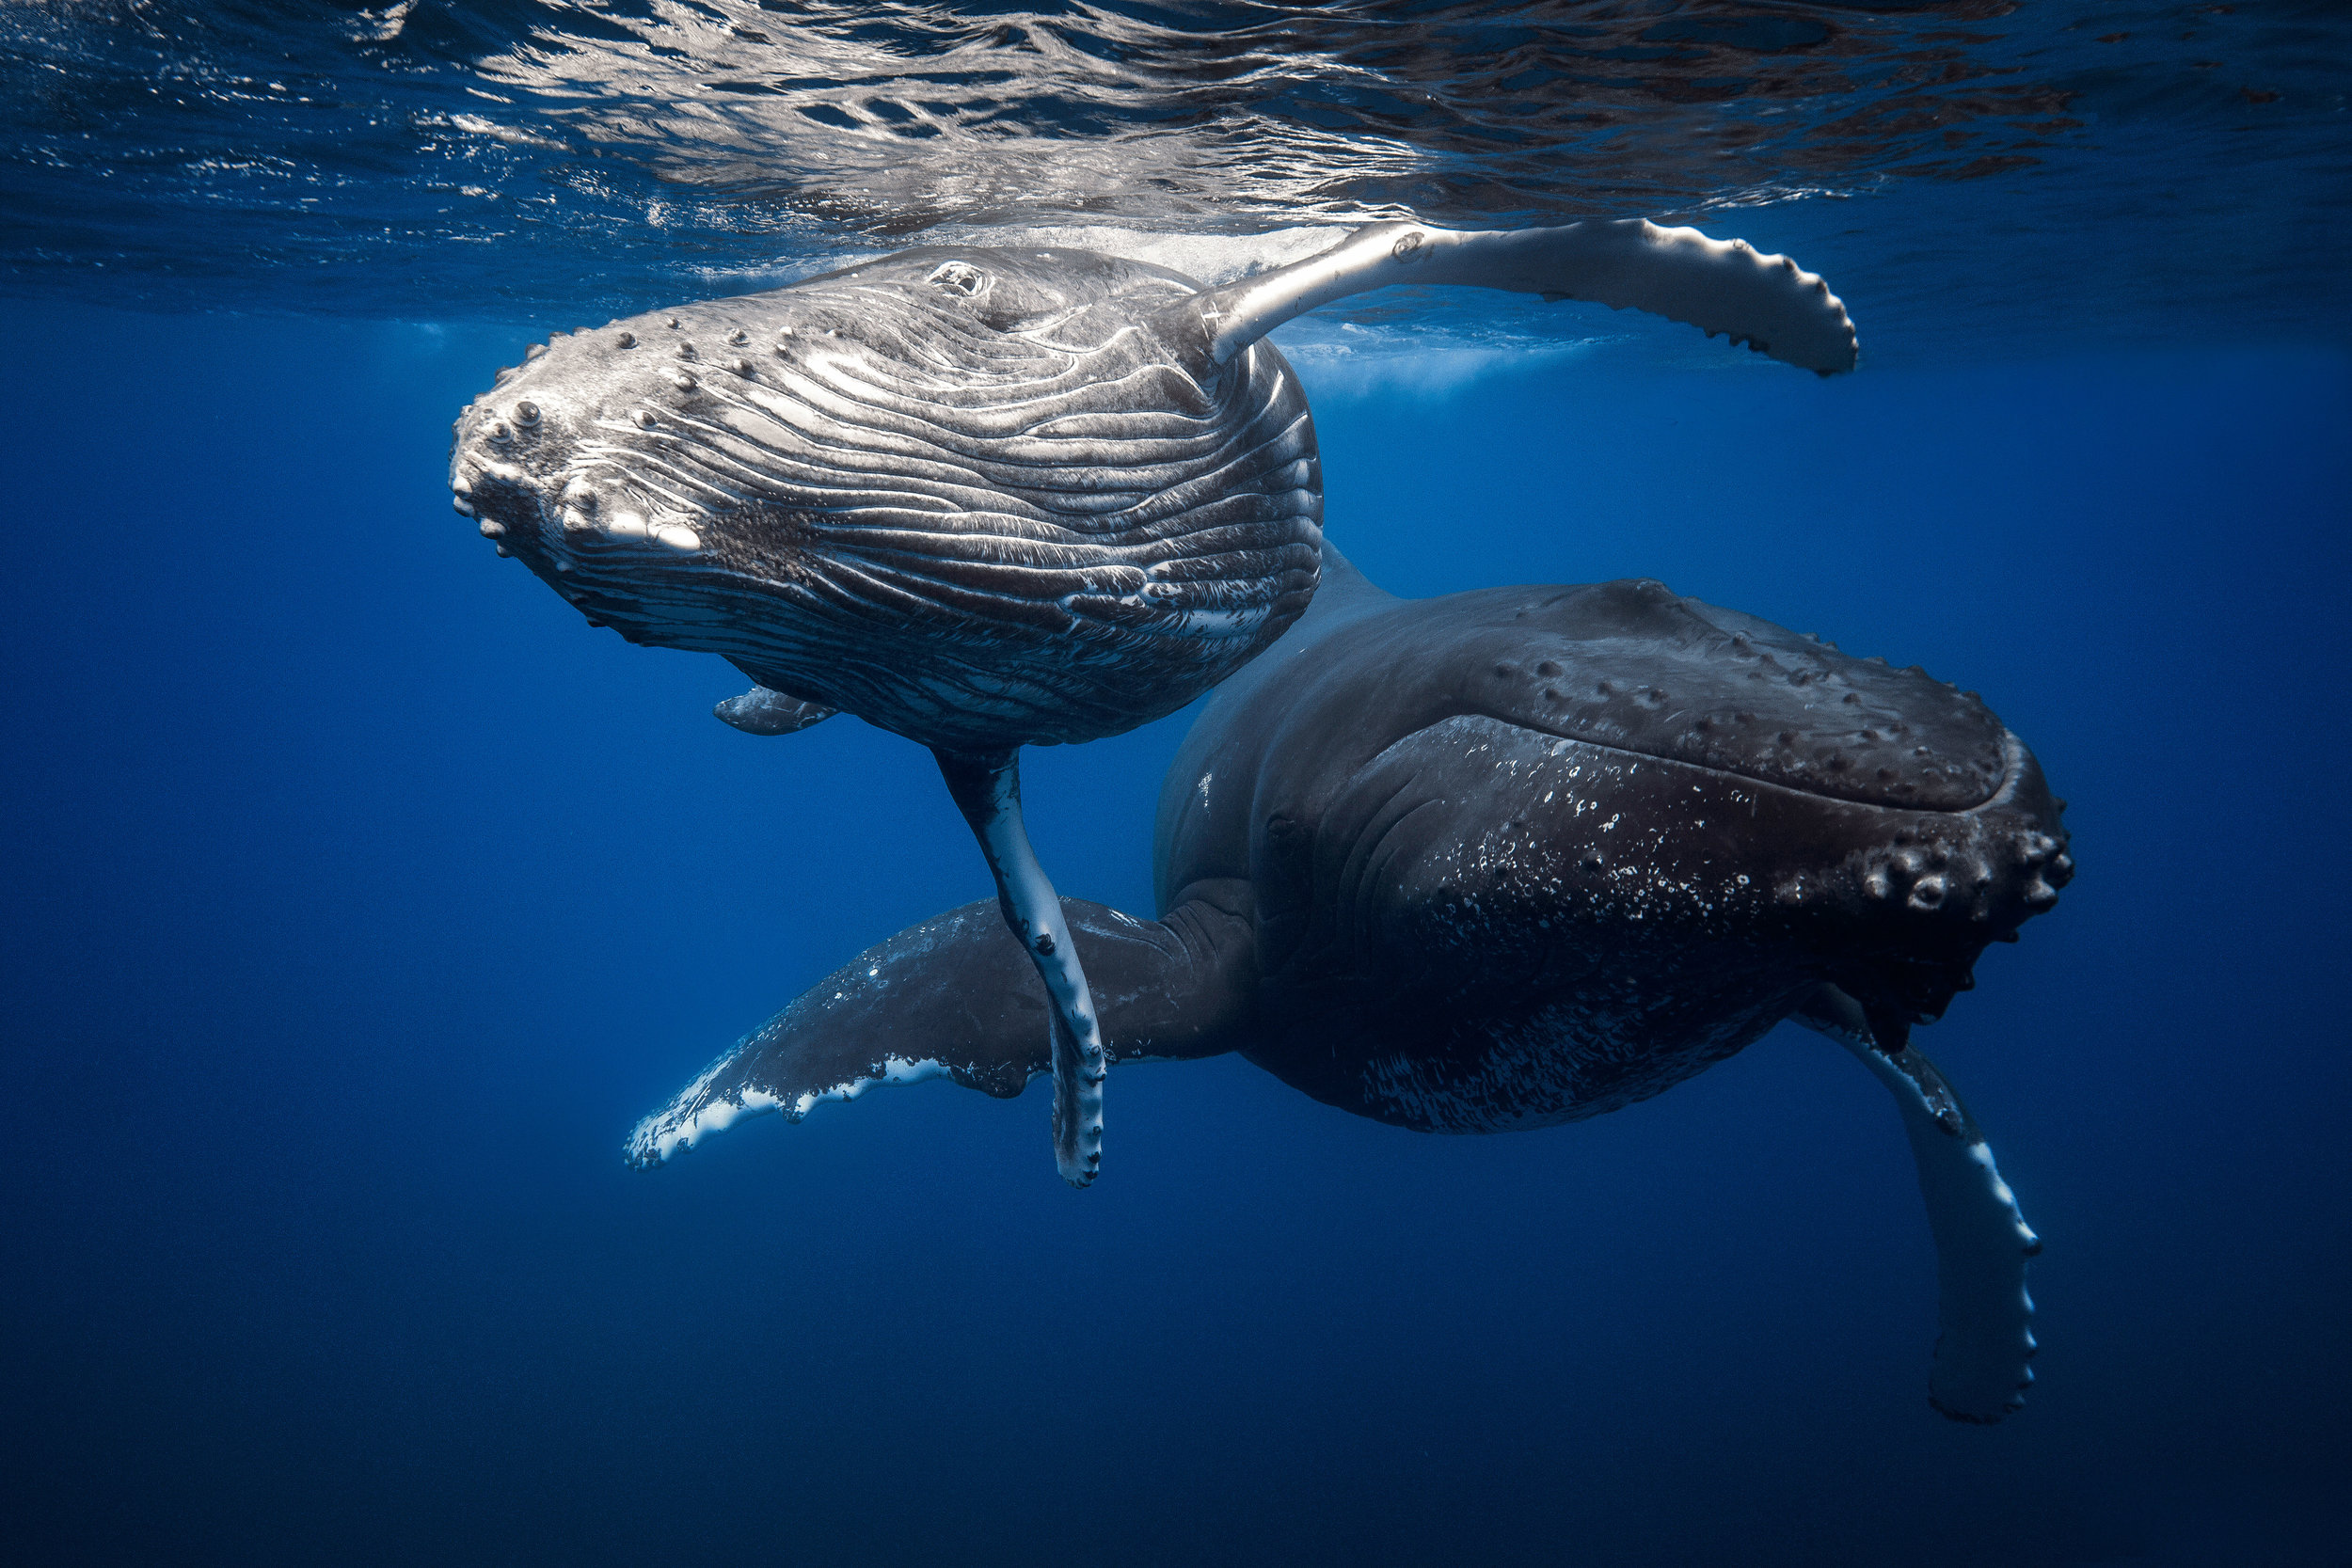 The HumpbackWhale - Whales (Megaptera novaeangliae)carry nutrients, such as nitrogen, from the depths where they feed, back to the surface via their feces. This transfer allows for more phytoplankton to grow at the surface, which is the basis of the entire food web. However, whales are at risk due to climate change, ship collisions and ocean acidification. Additionally, ship engines and sound explosions interfere with their vocalisations and disorient them.